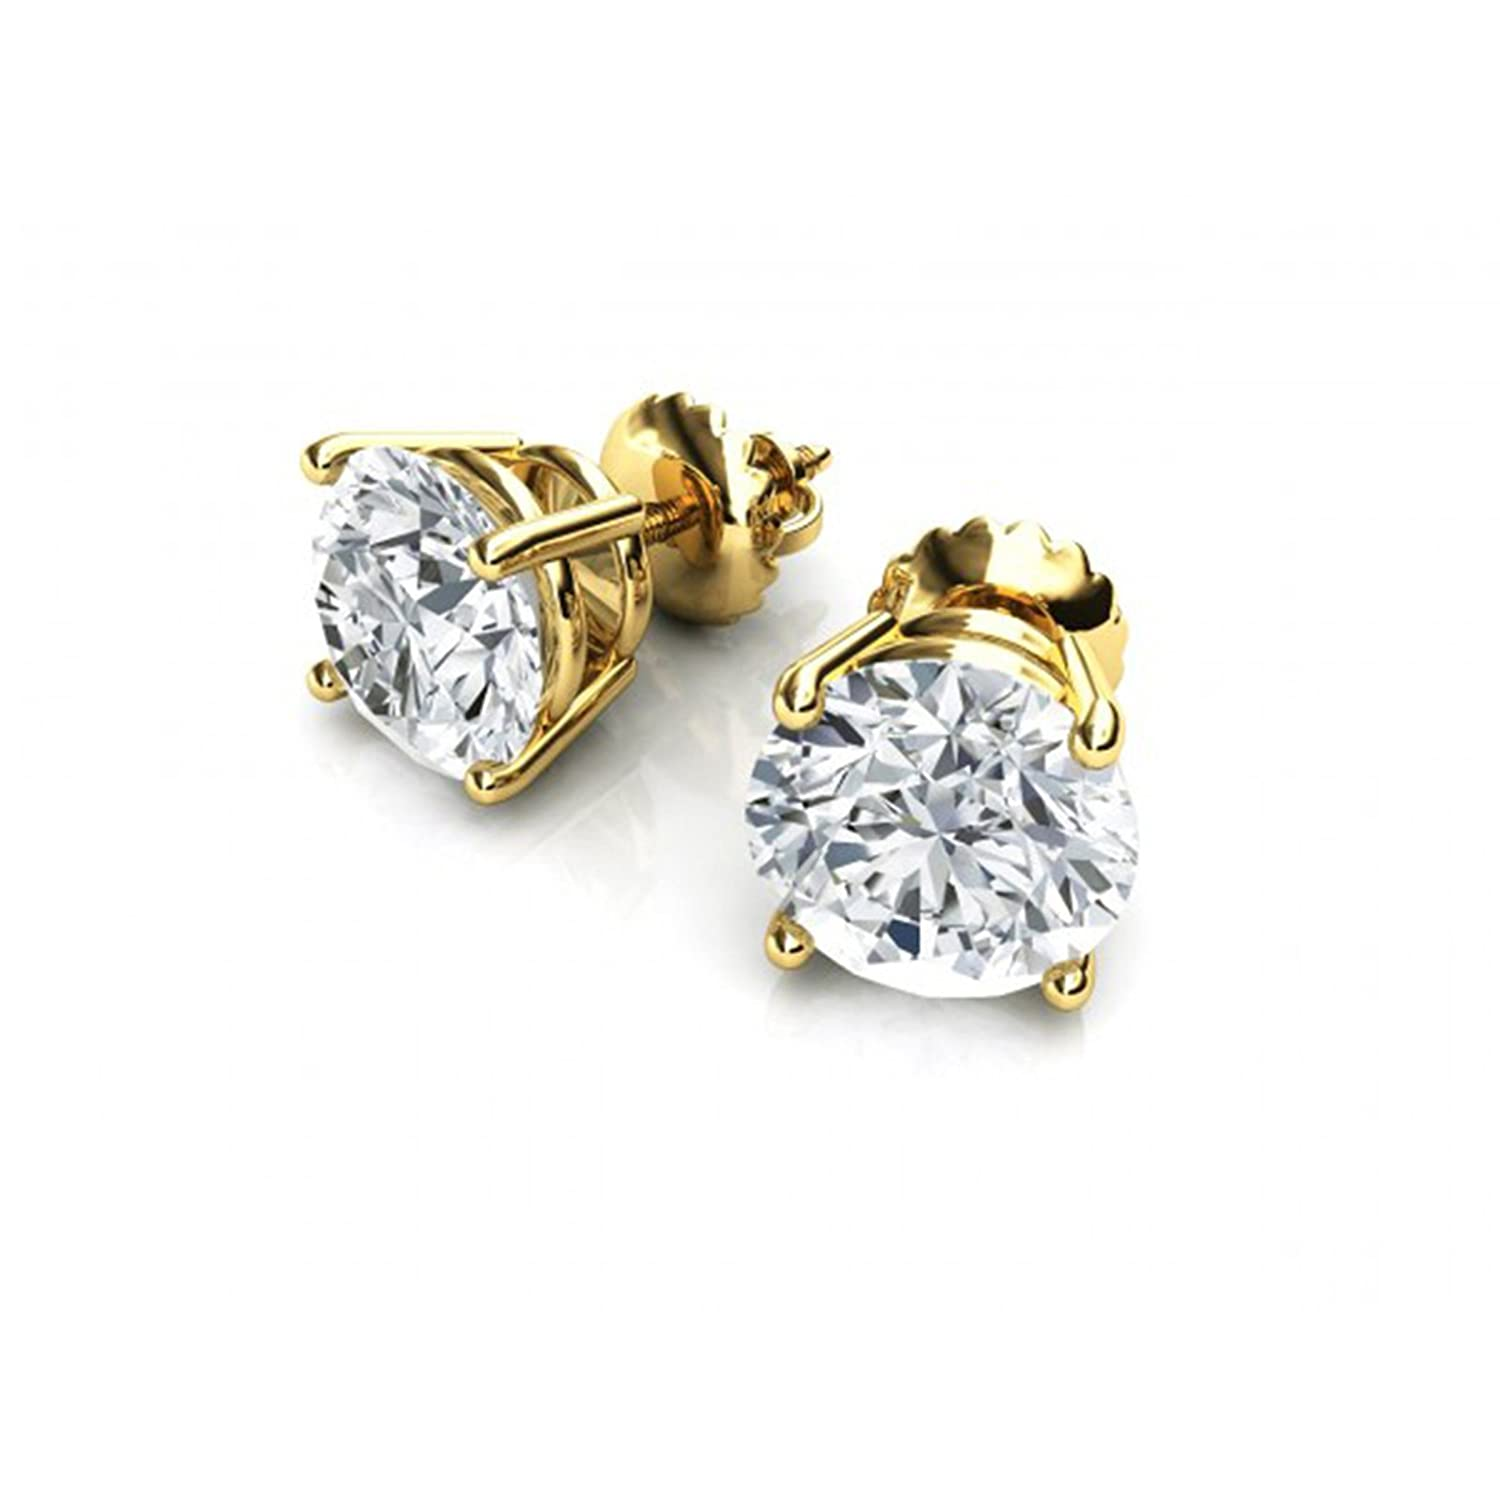 0.9ct Brilliant Round Cut Solitaire Highest Quality Moissanite Unisex Anniversary Gift Stud Earrings Real Solid 14k Yellow Gold Screw Back